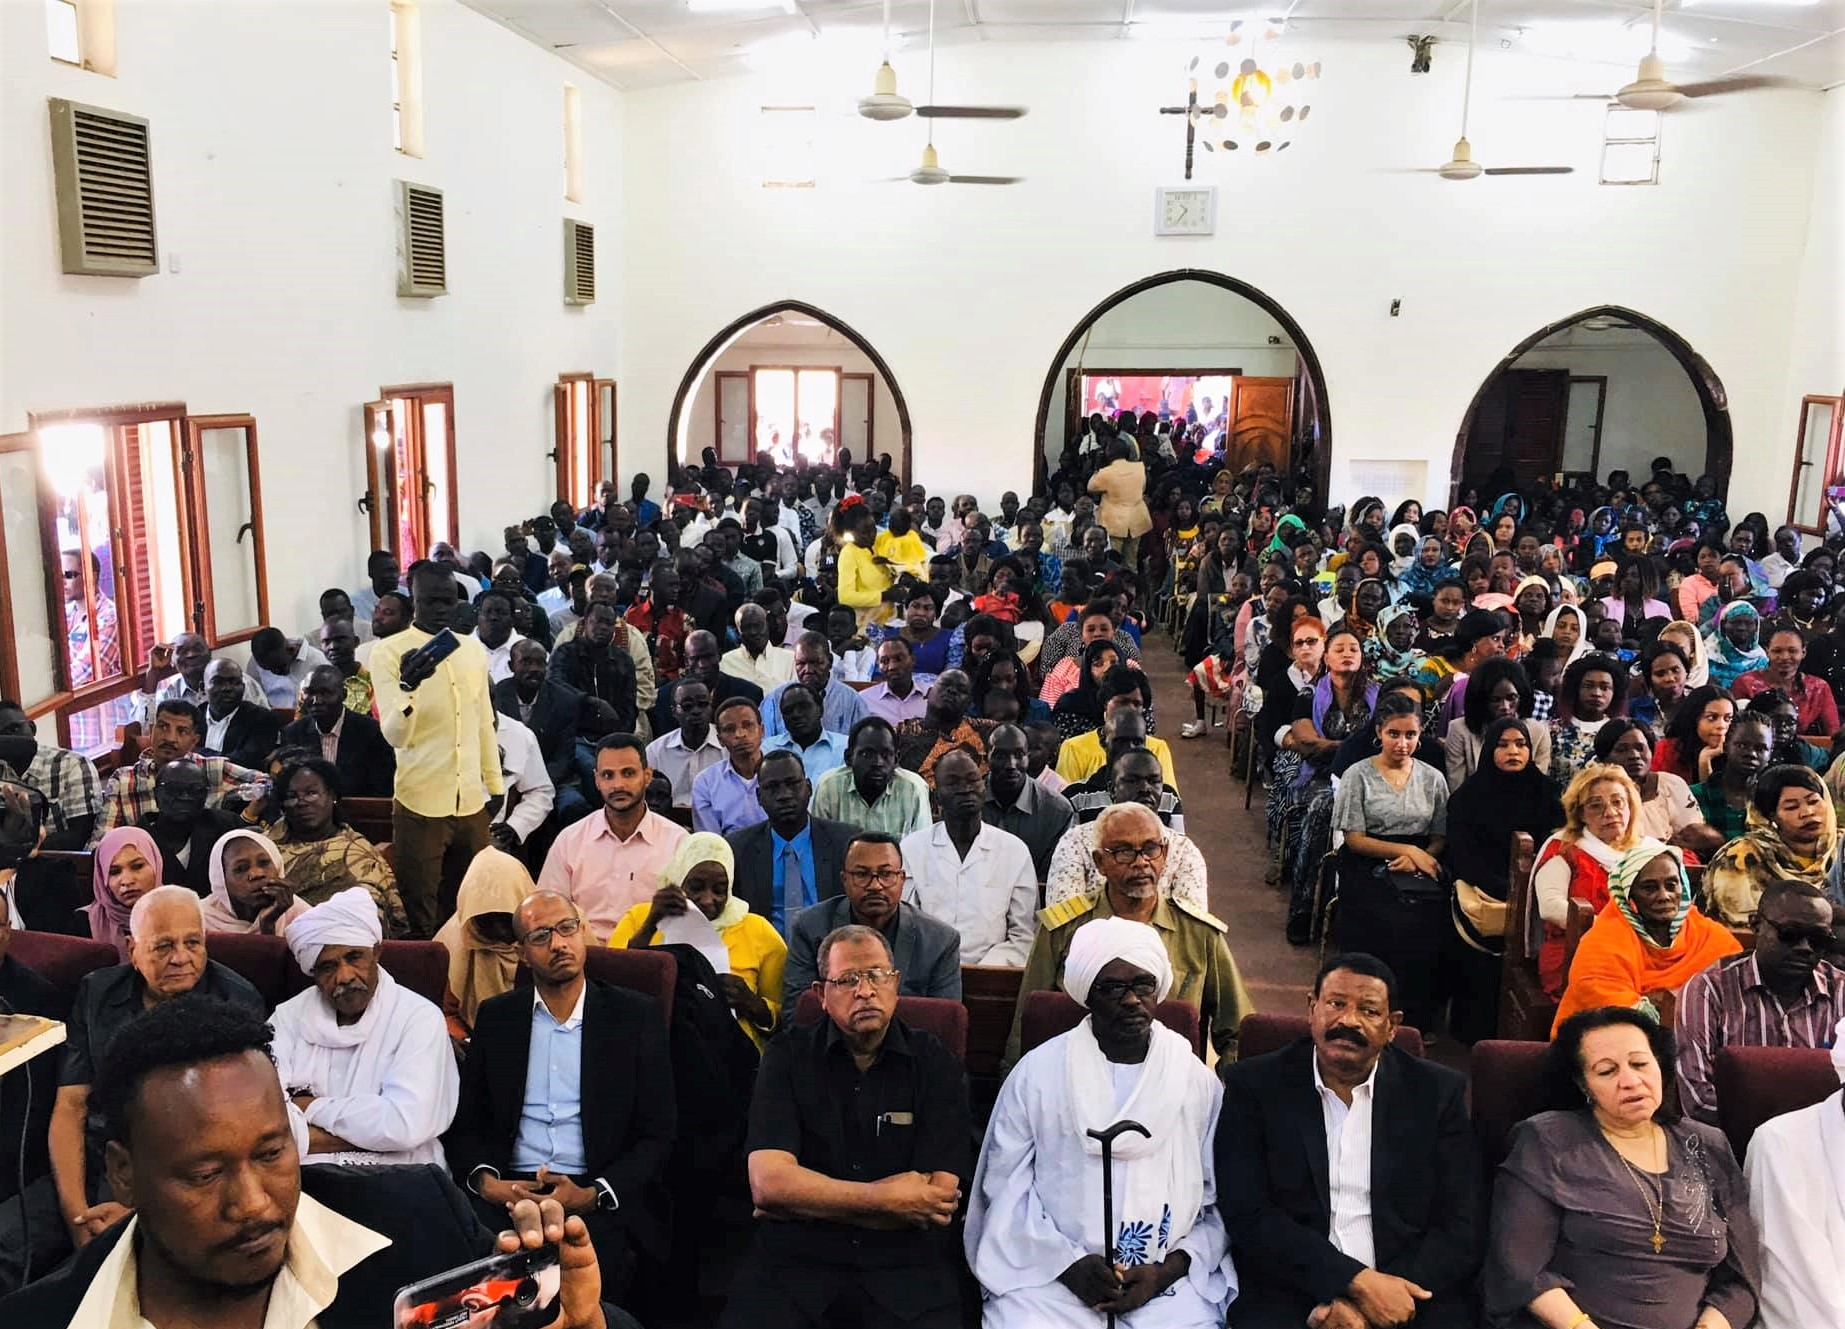 Muslim government officials attend Christmas service at Khartoum Bahri Evangelical Church on Dec. 25, 2019. (Courtesy of Bahri church)